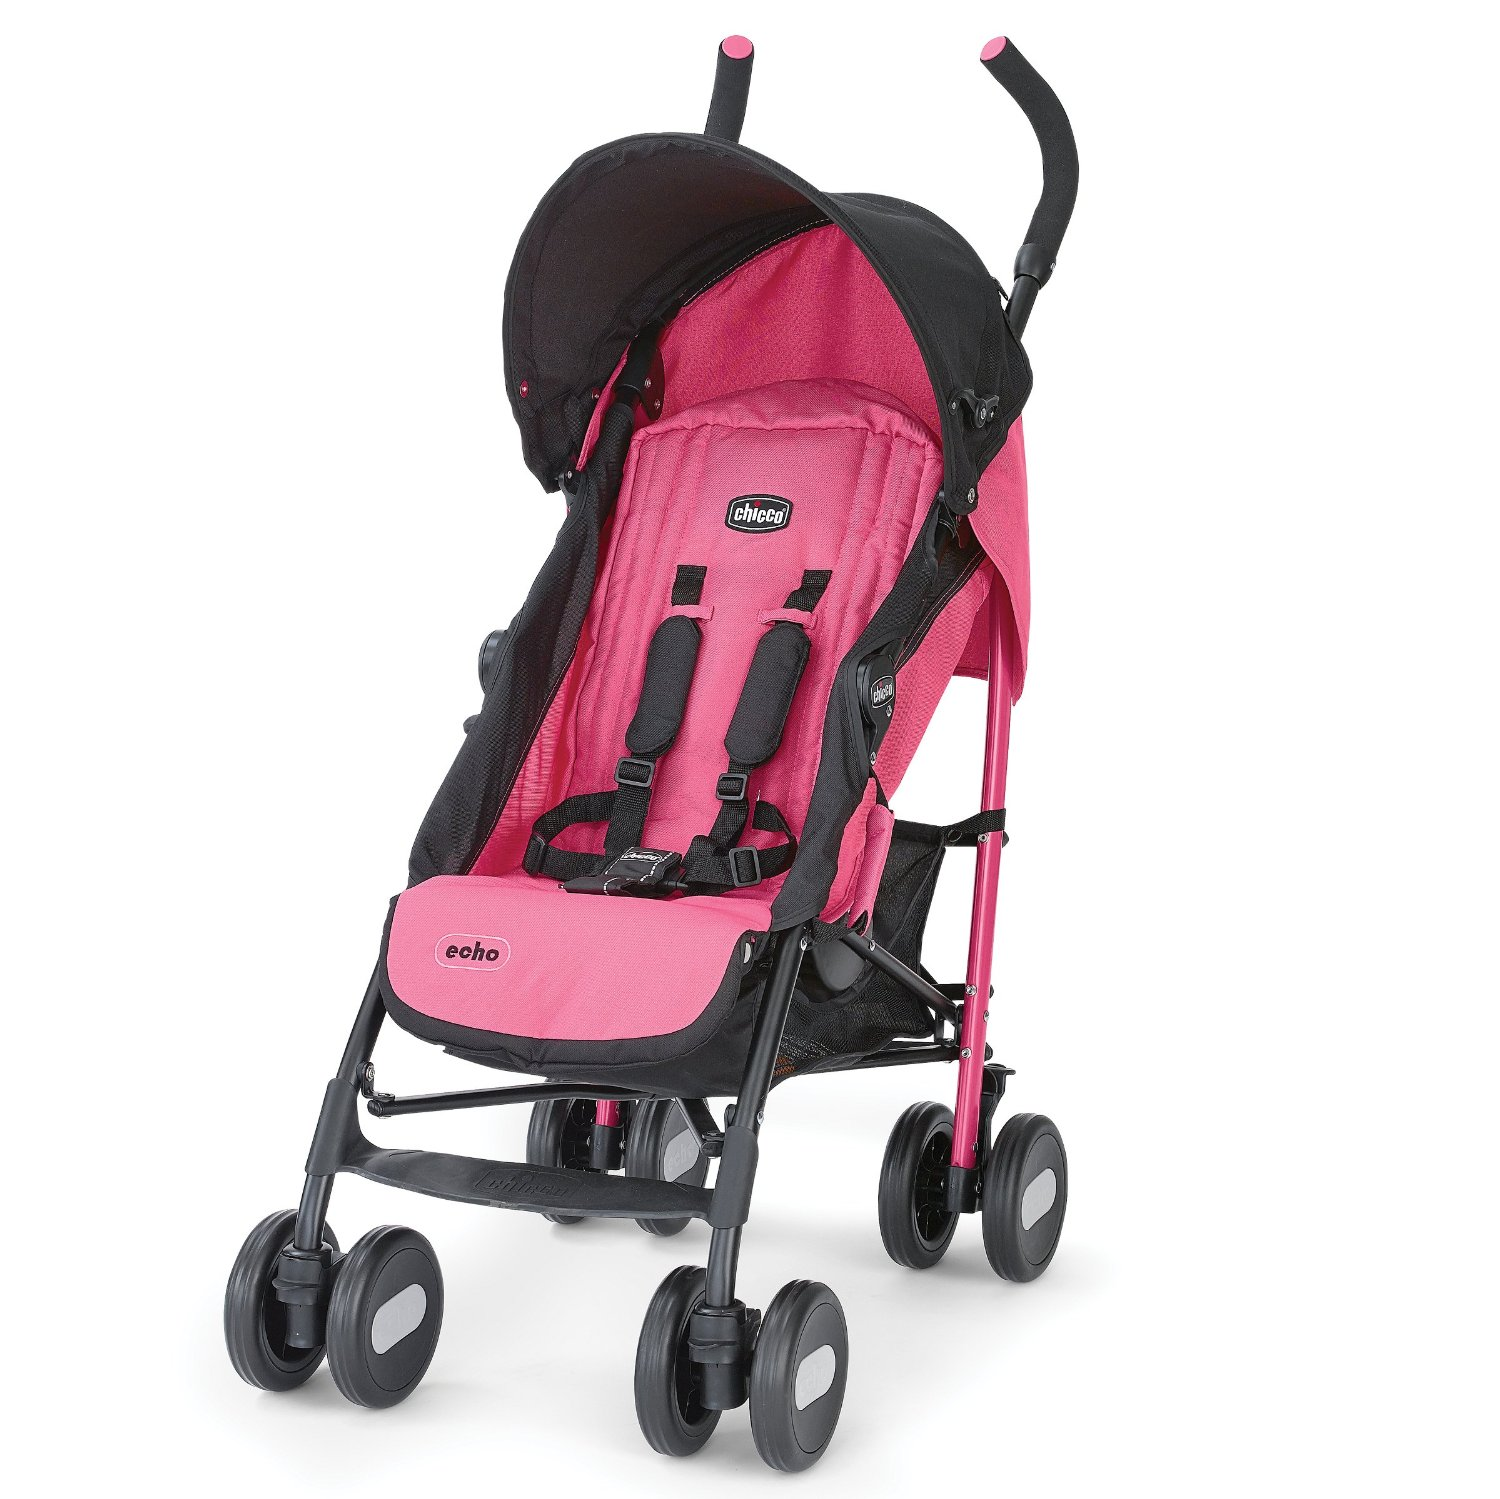 Chicco Echo Stroller, Dragonfruit